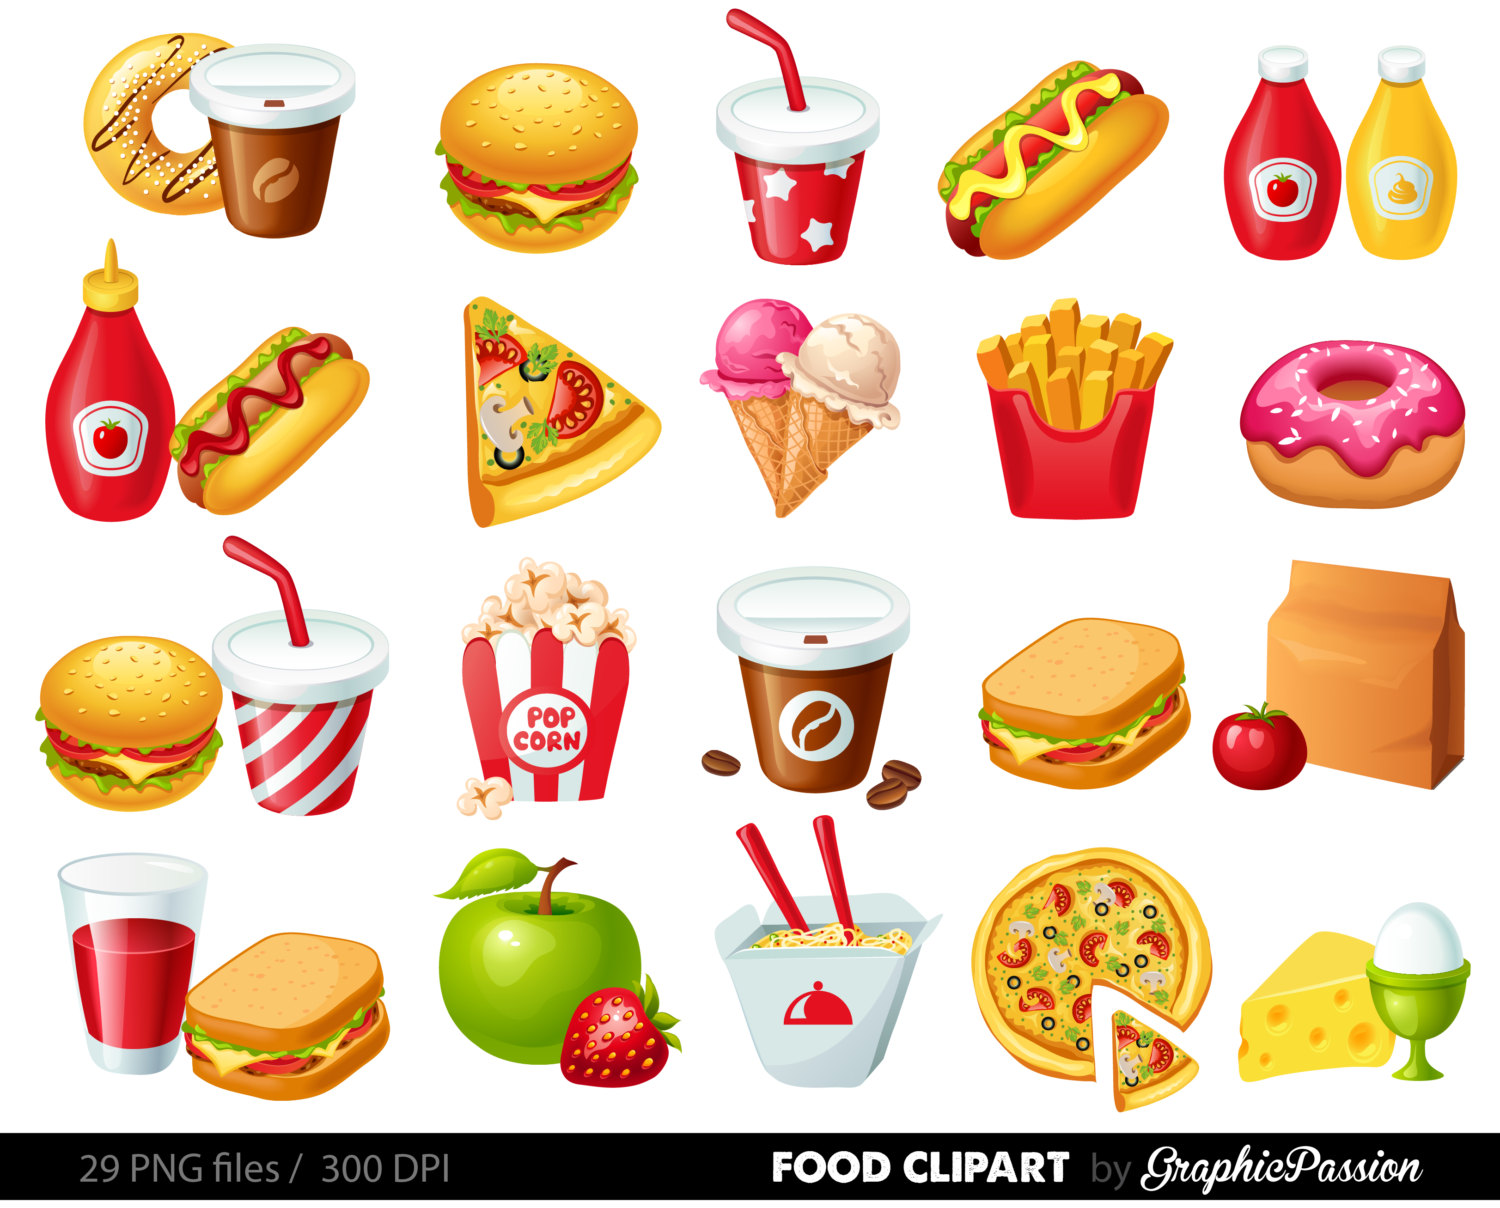 American fast food clipart.